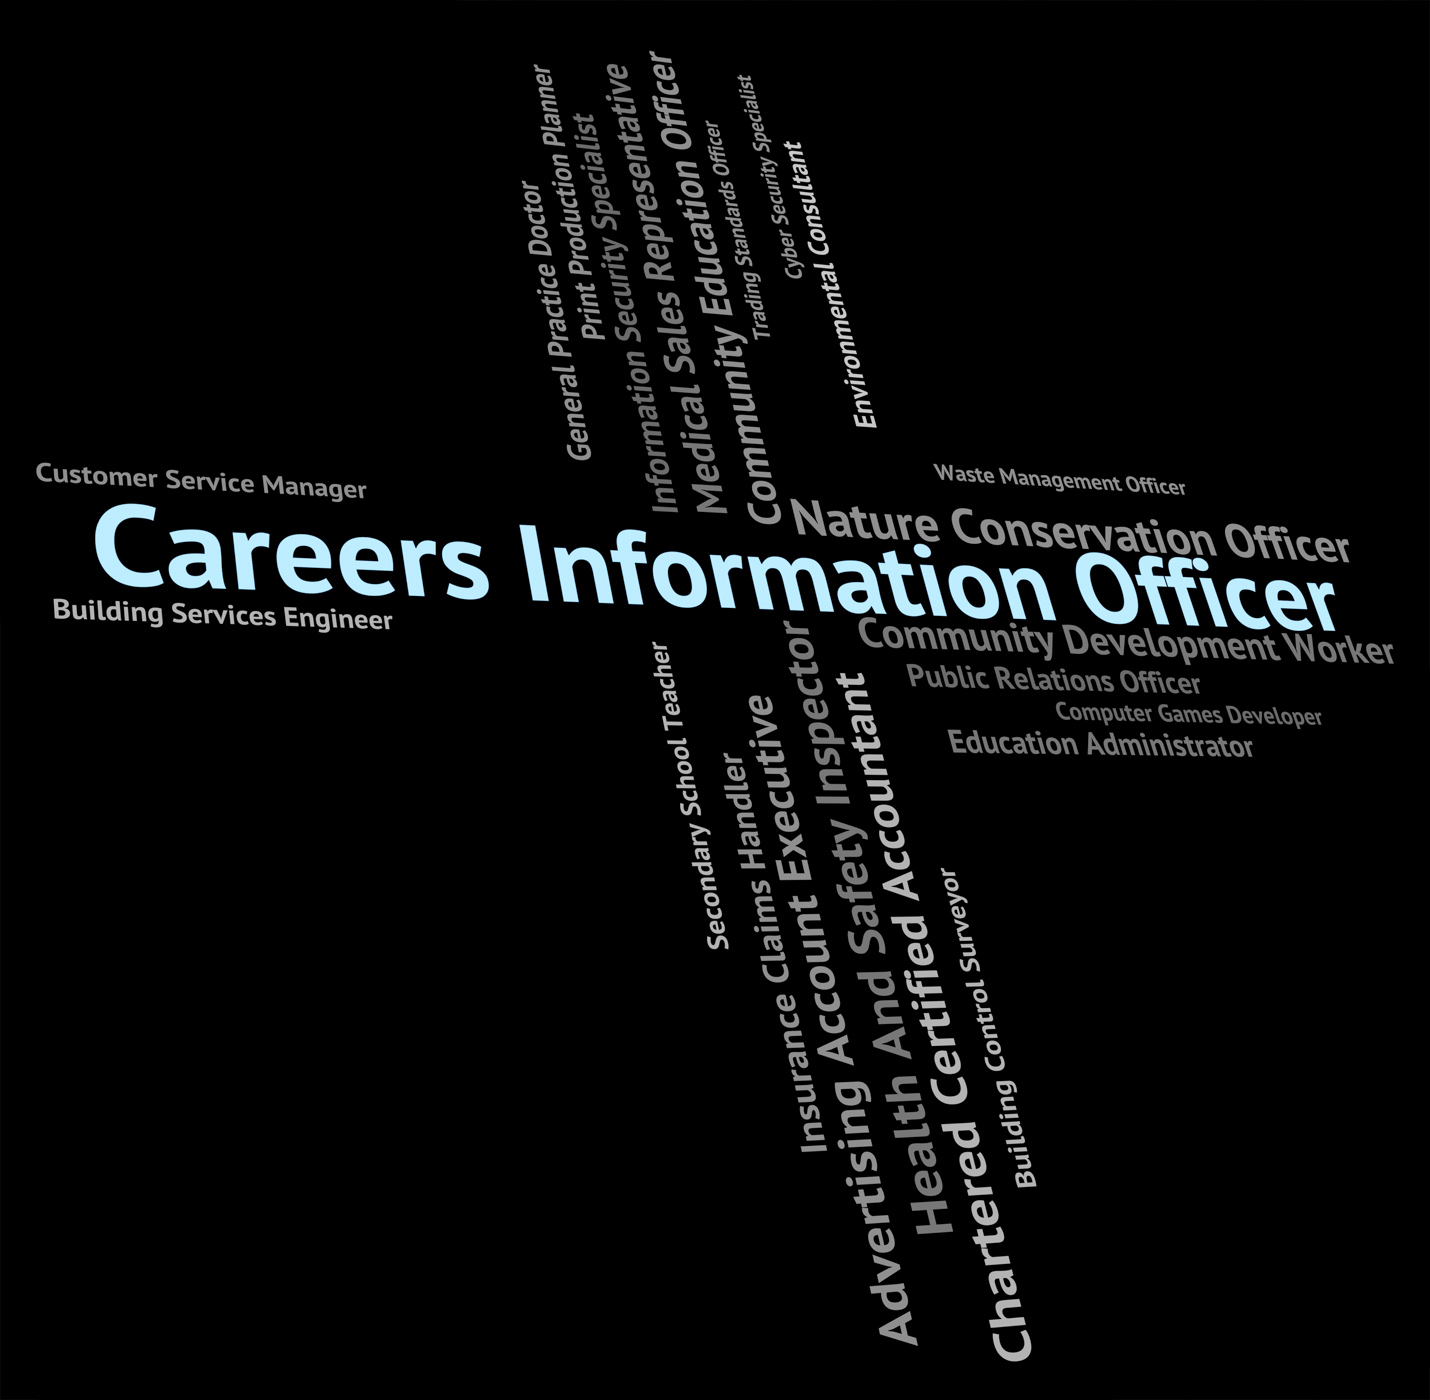 Careers Information Officer Indicates Officials Vocations And Pr, Administrator, Post, Occupations, Officer, HQ Photo